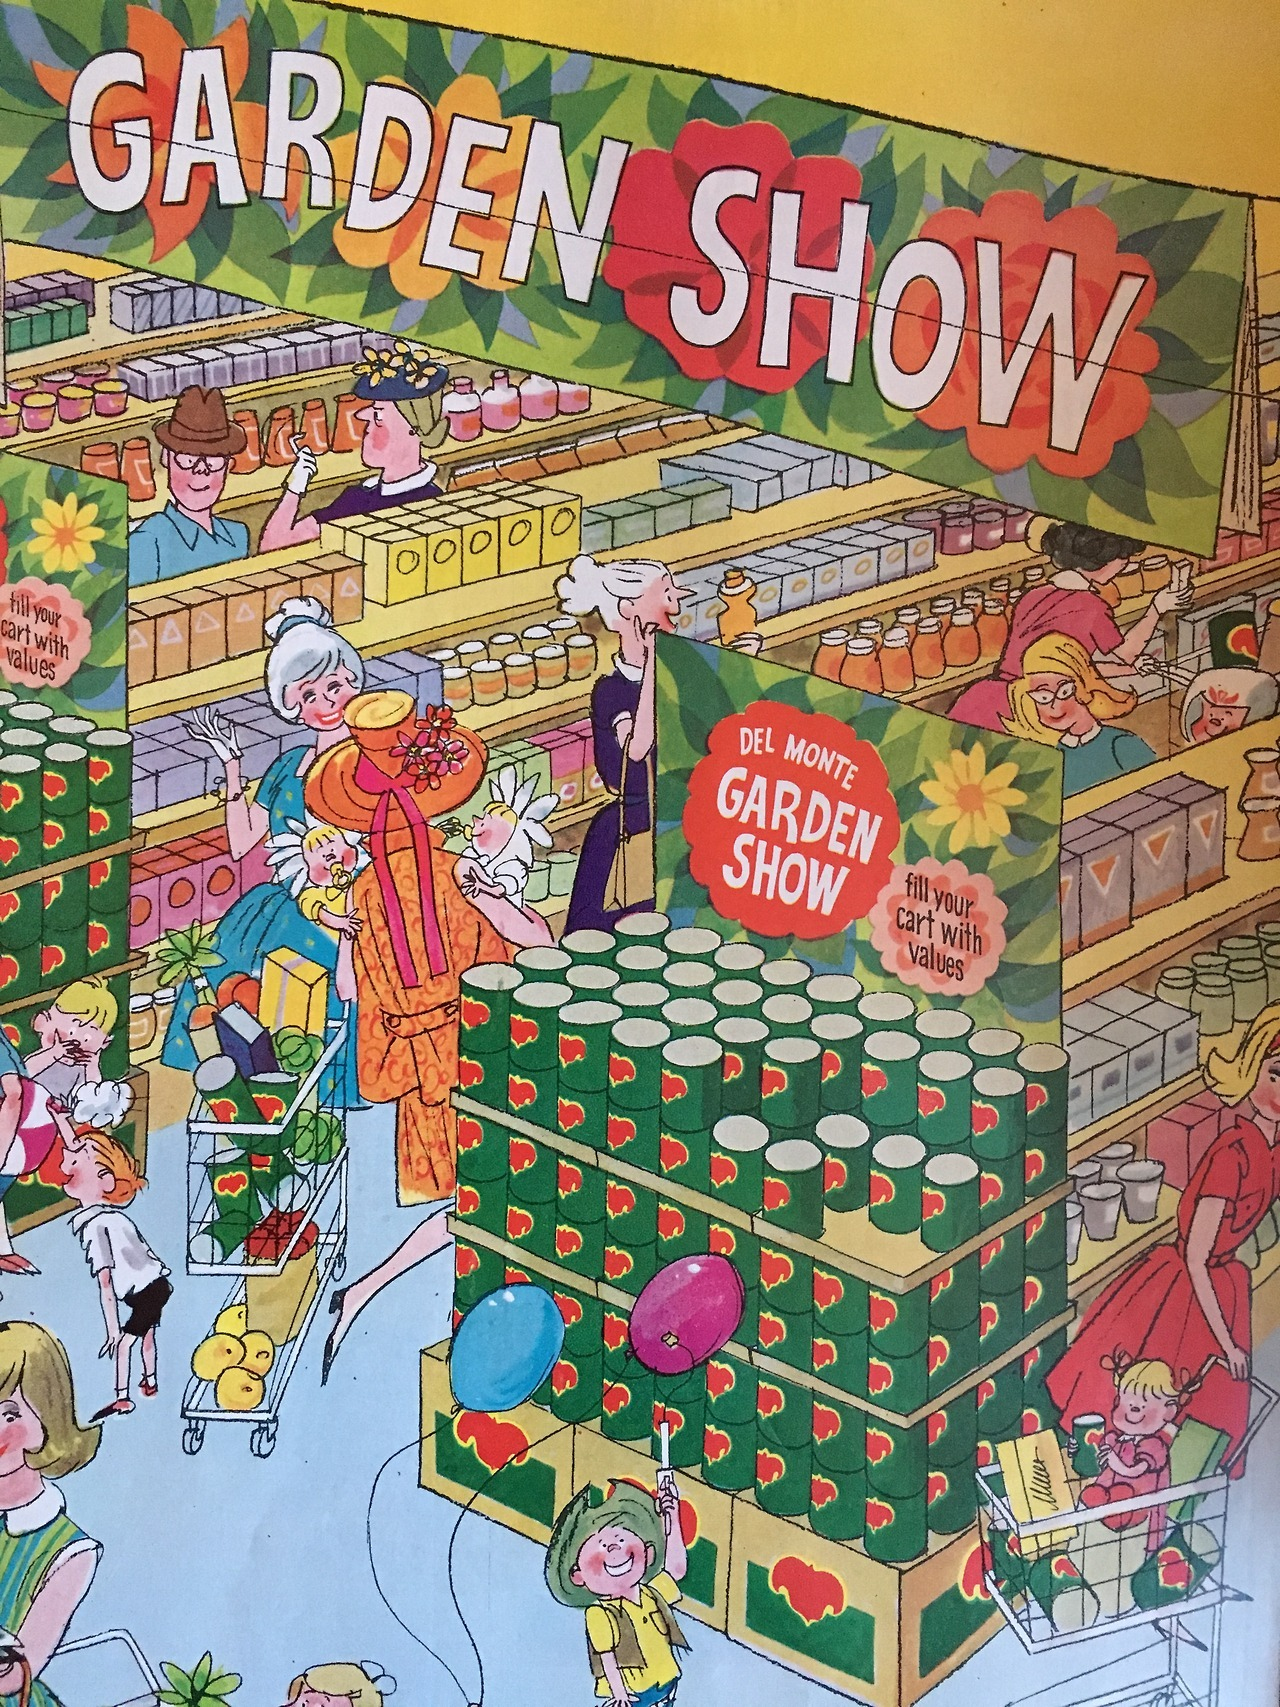 Del Monte Garden Show.  Ladies' Home Journal. May 1963